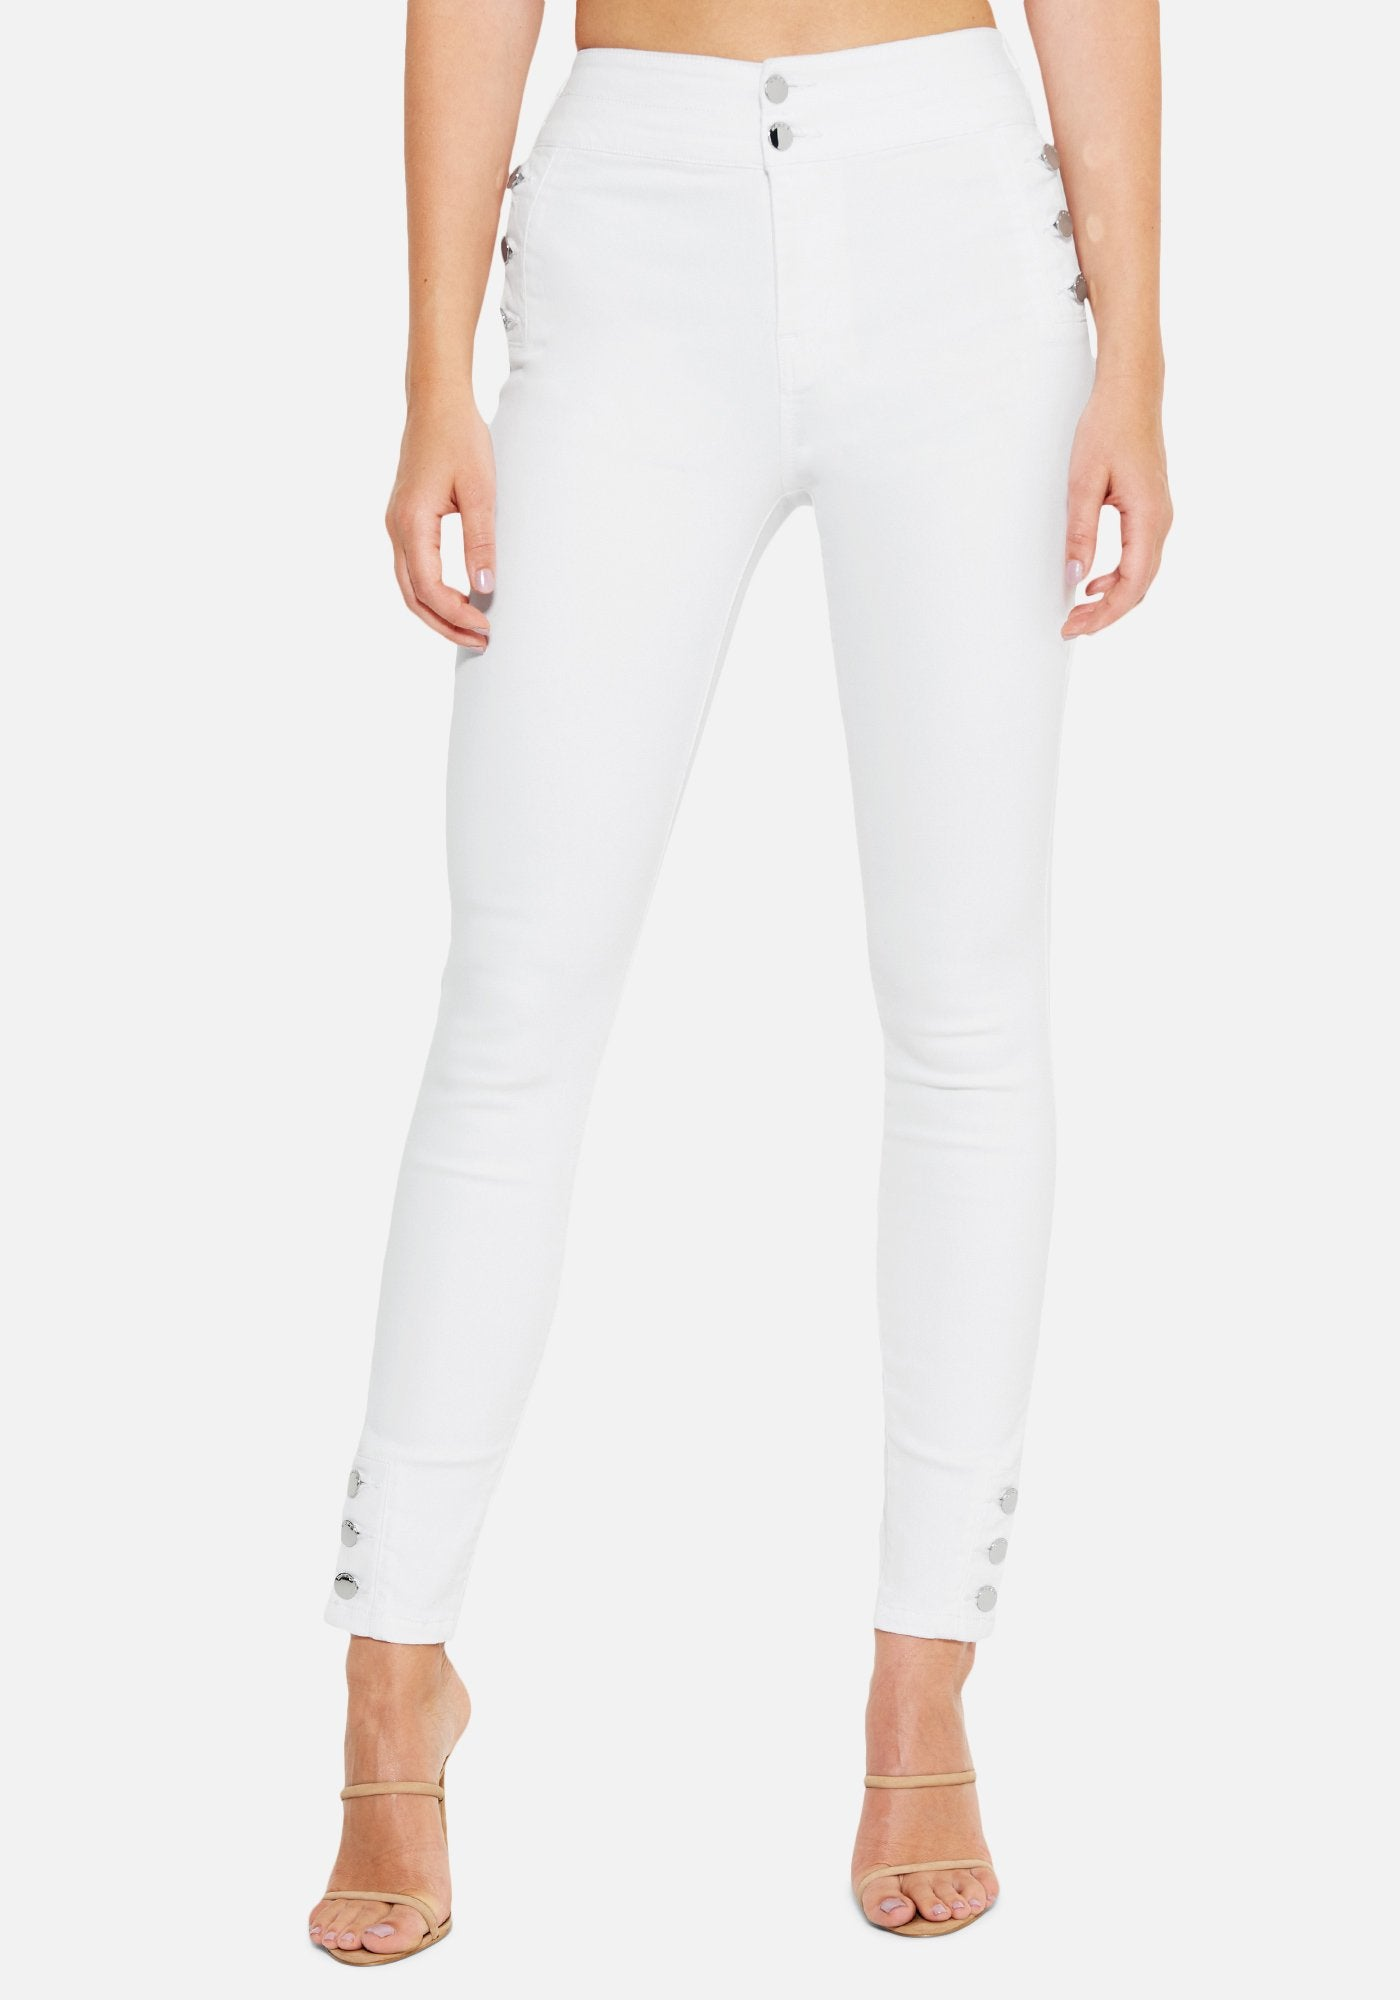 Bebe Women's Button Detail Skinny Jeans, Size 25 in WHITE Cotton/Spandex